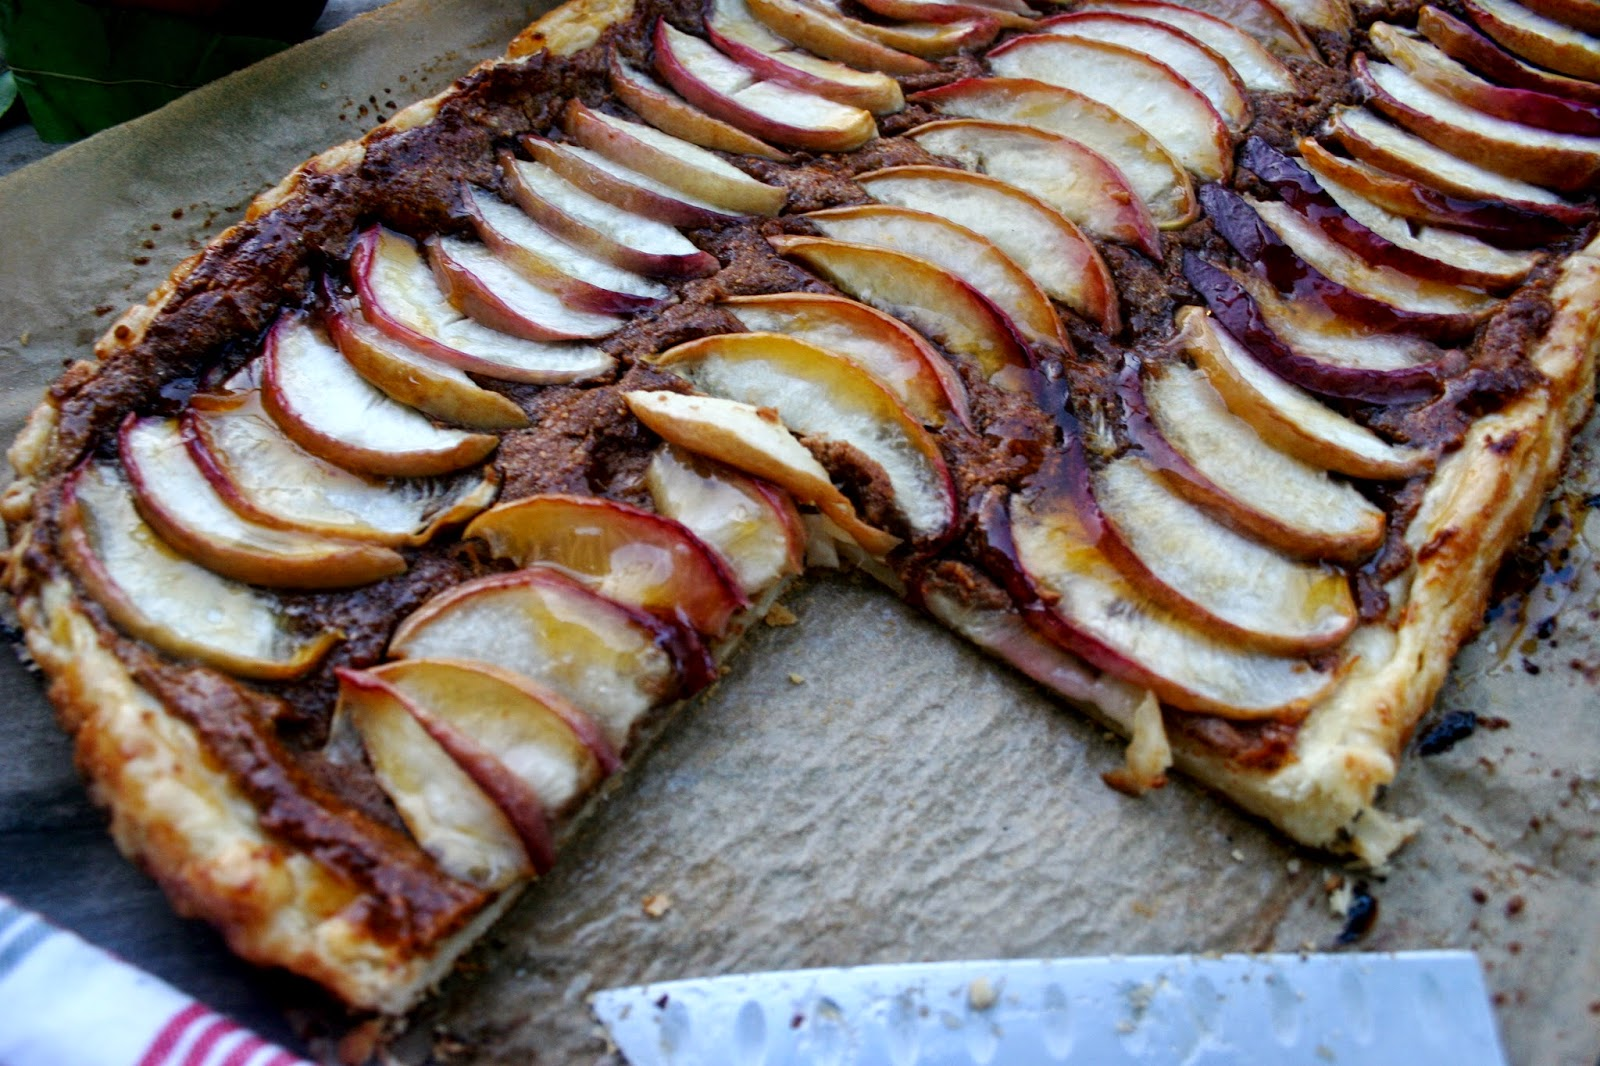 White Nectarine Frangipane Tart with Homemade Puff Pastry, pre-bake